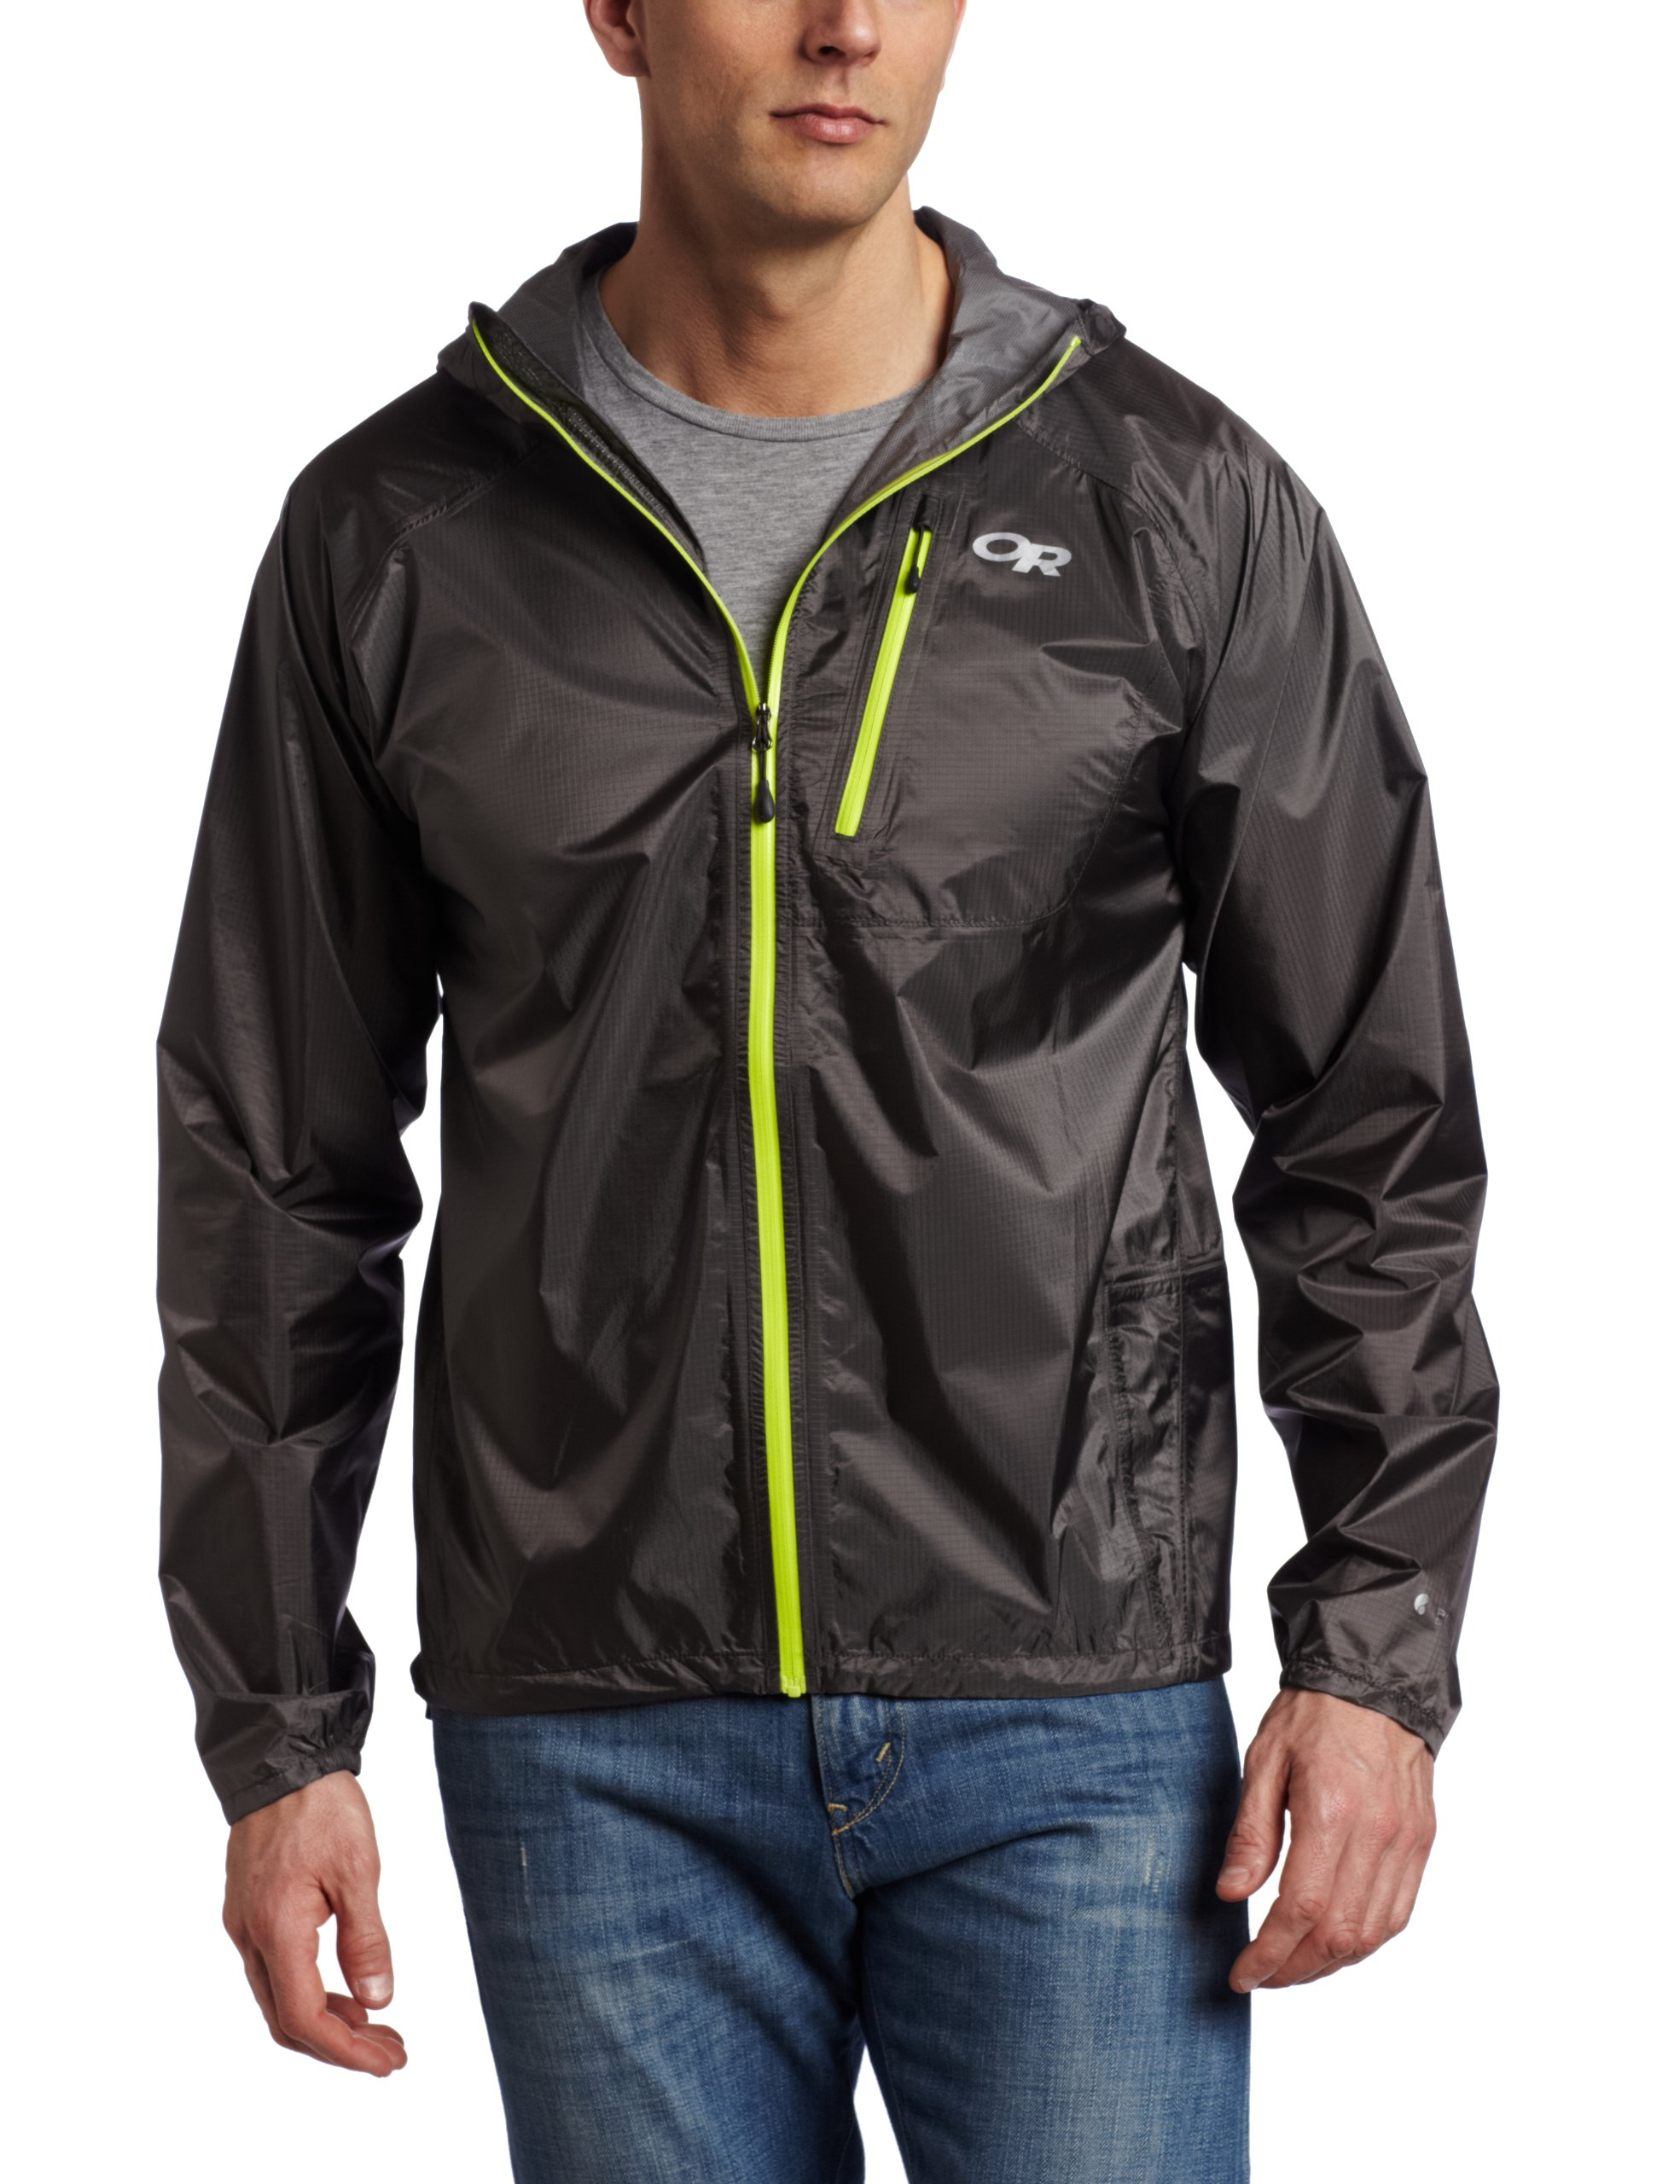 Outdoor Research Men's Helium II Jacket, Pewter, Large by Outdoor Research